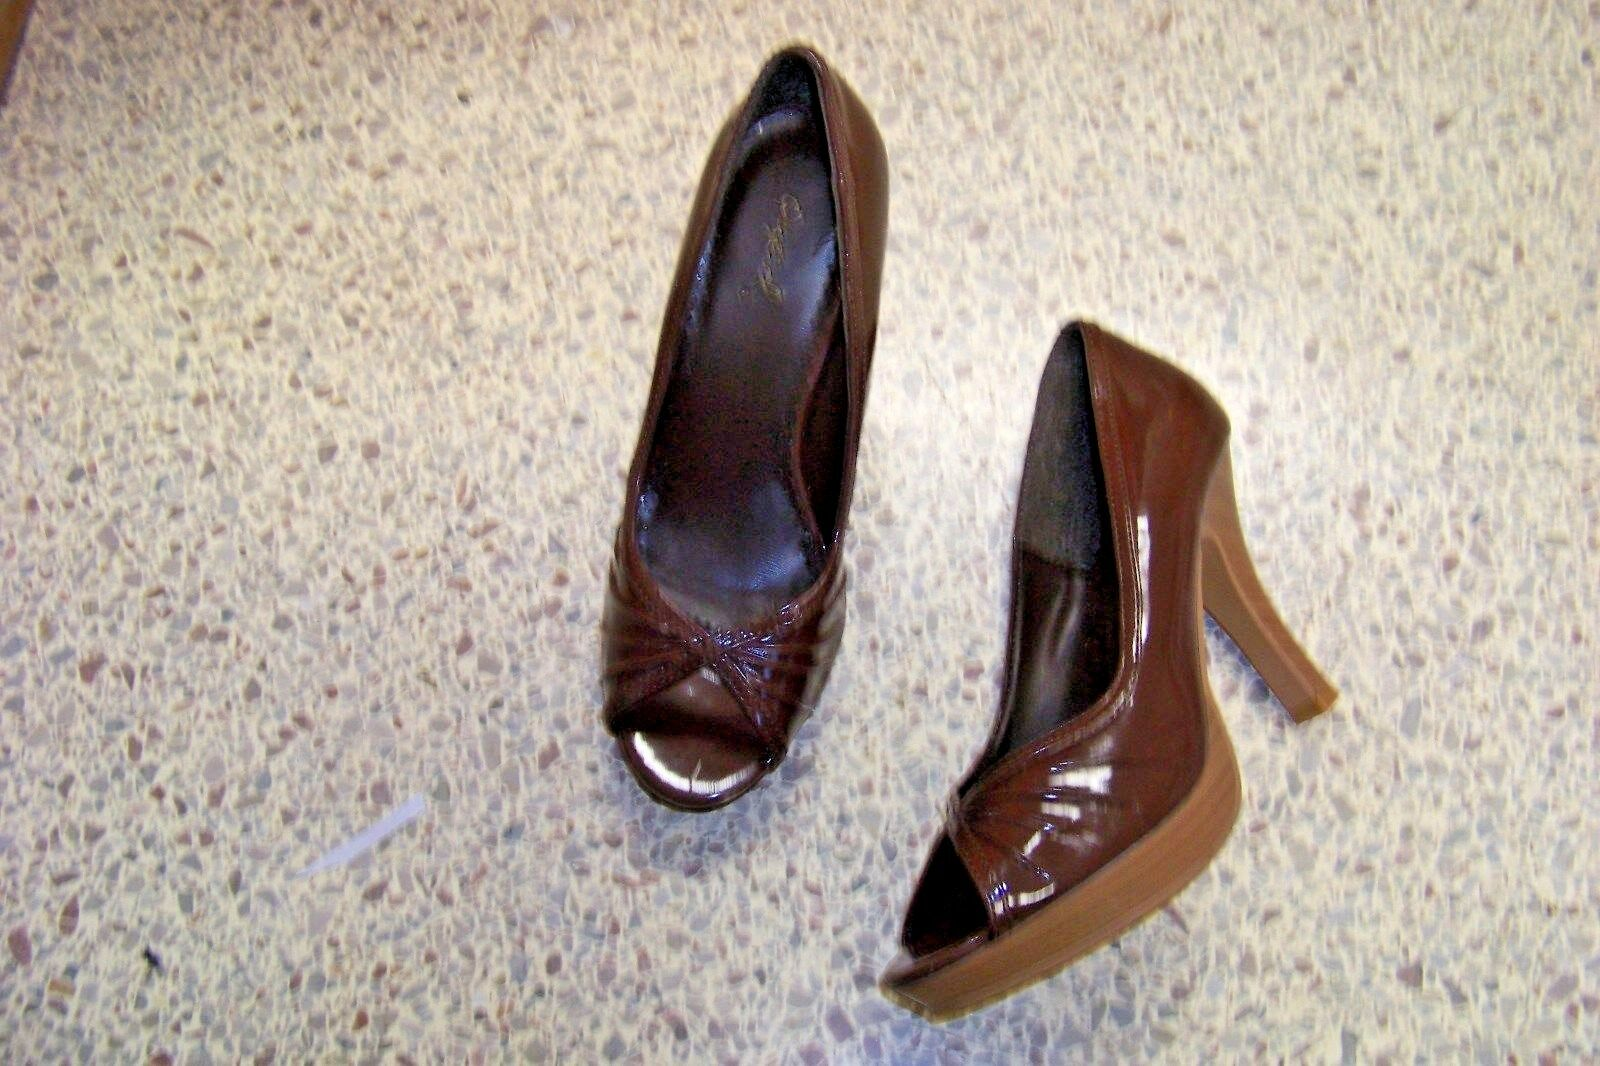 qupid brown patent open size toe heels shoes size open 7 94d64e